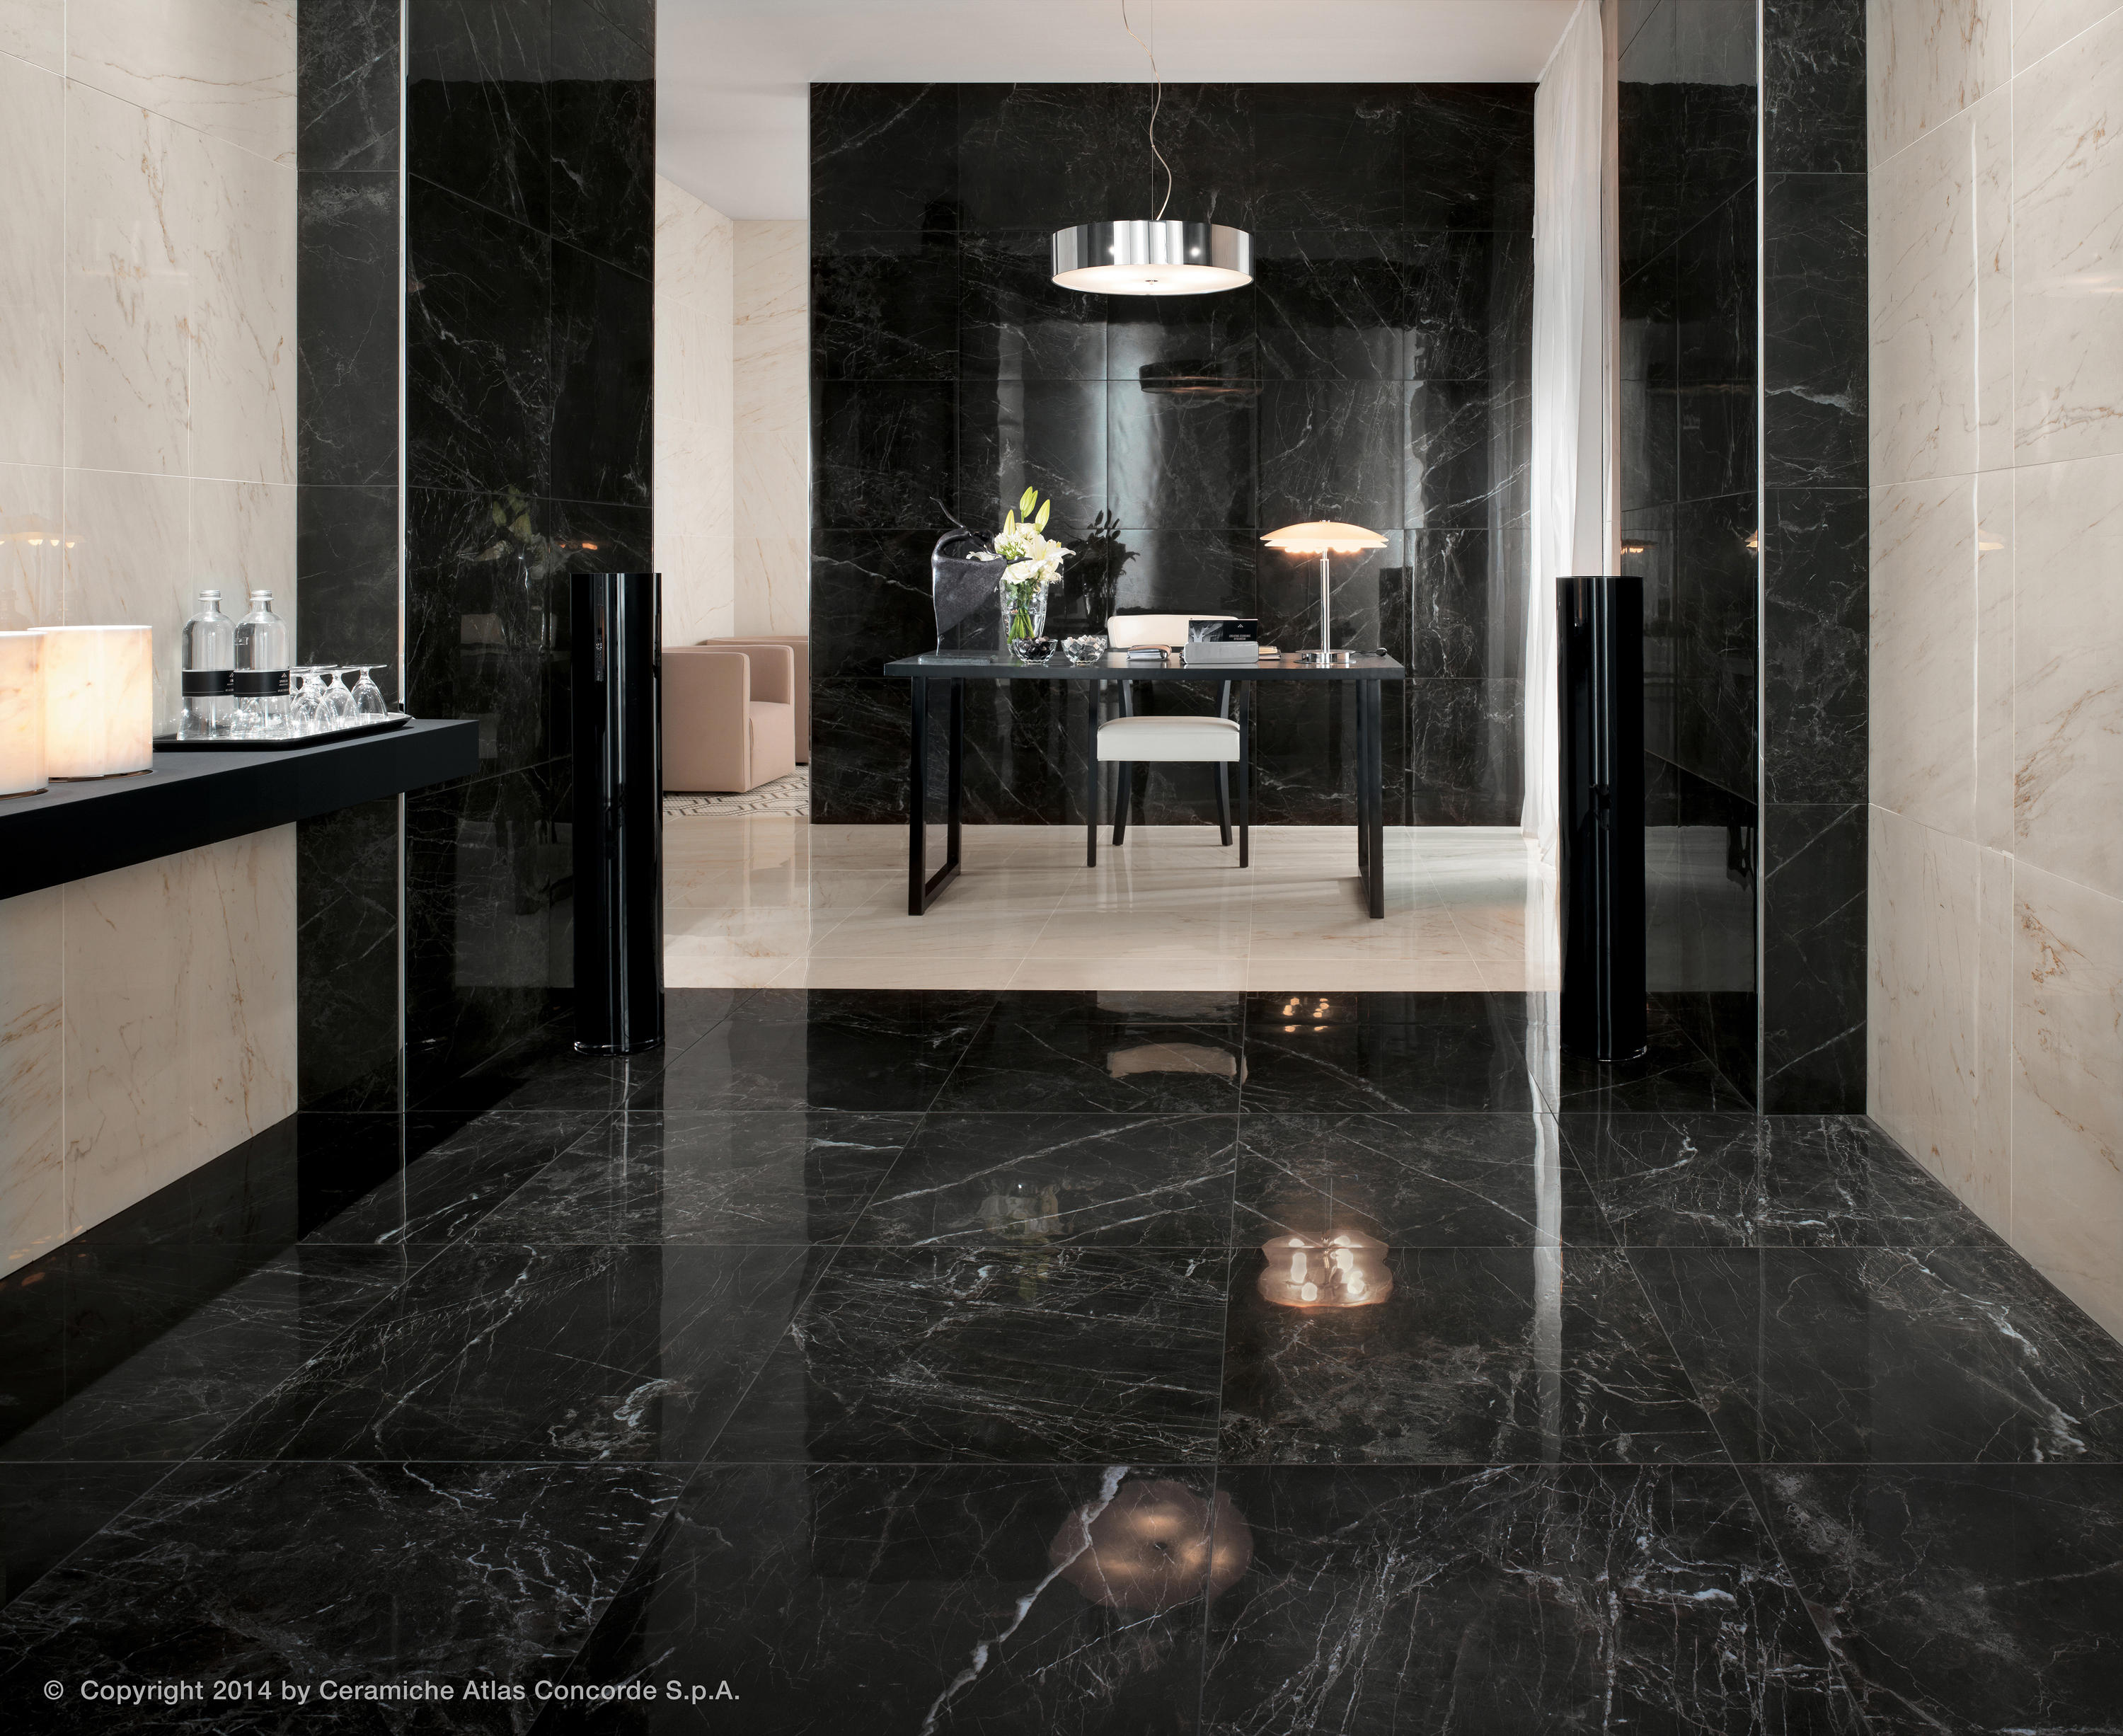 Marvel pro statuario select ribbon ceramic tiles from for Carrelage noir brillant pour sol